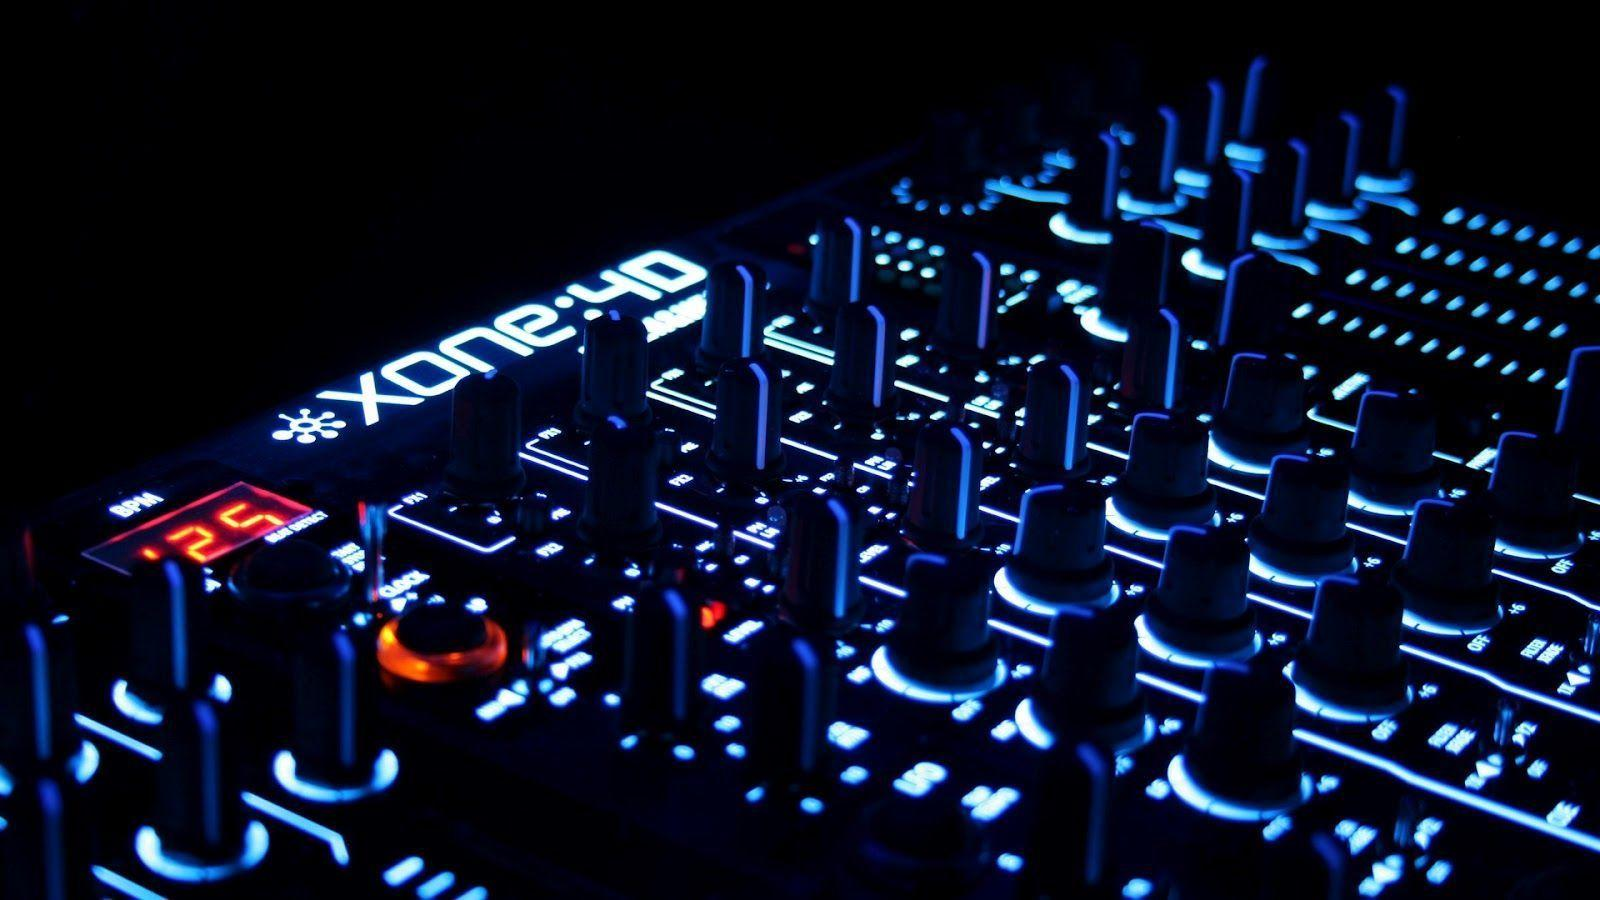 Pioneer Dj Wallpapers Wallpaper Cave